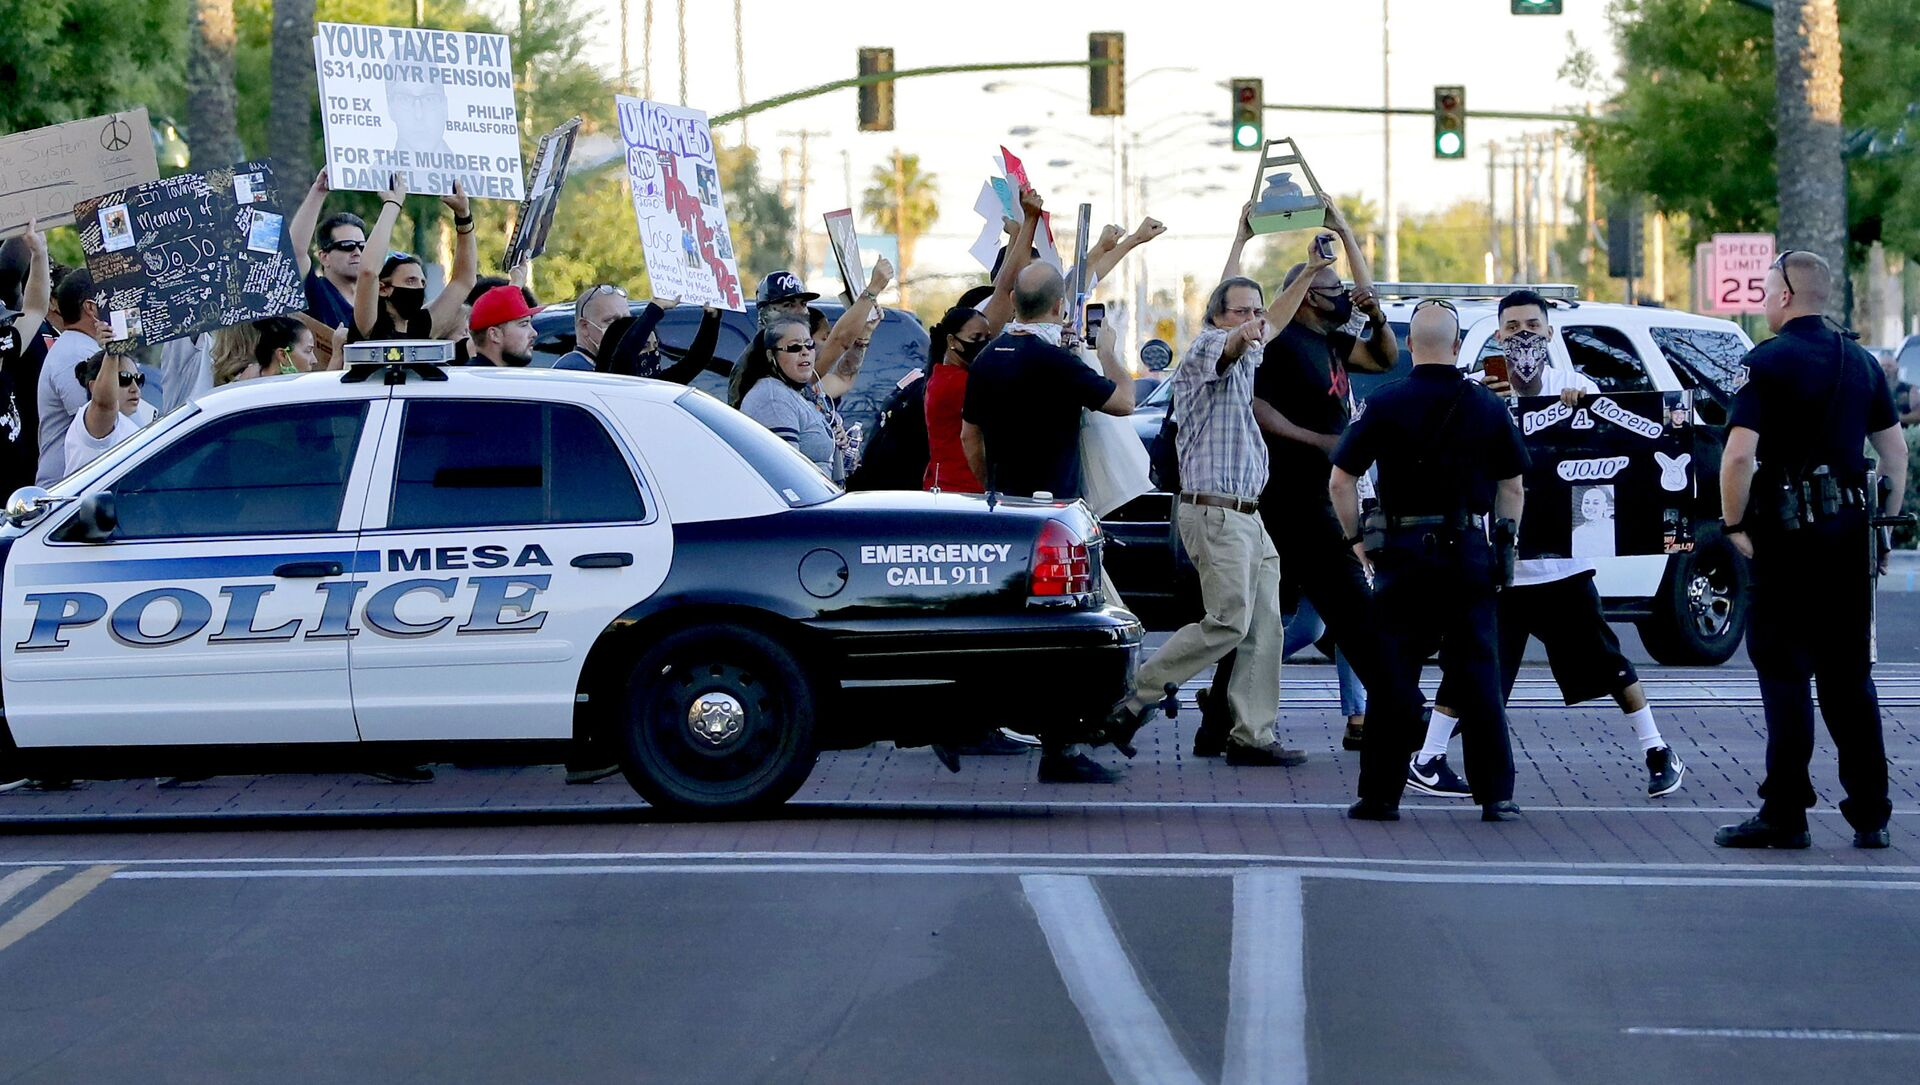 Protesters demanding police reform walk past Mesa police officers blocking a street, Tuesday, June 9, 2020, in Mesa, Ariz. The protest is a result of the death of George Floyd, a black man who died after being restrained by Minneapolis police officers on May 25 - Sputnik International, 1920, 08.05.2021